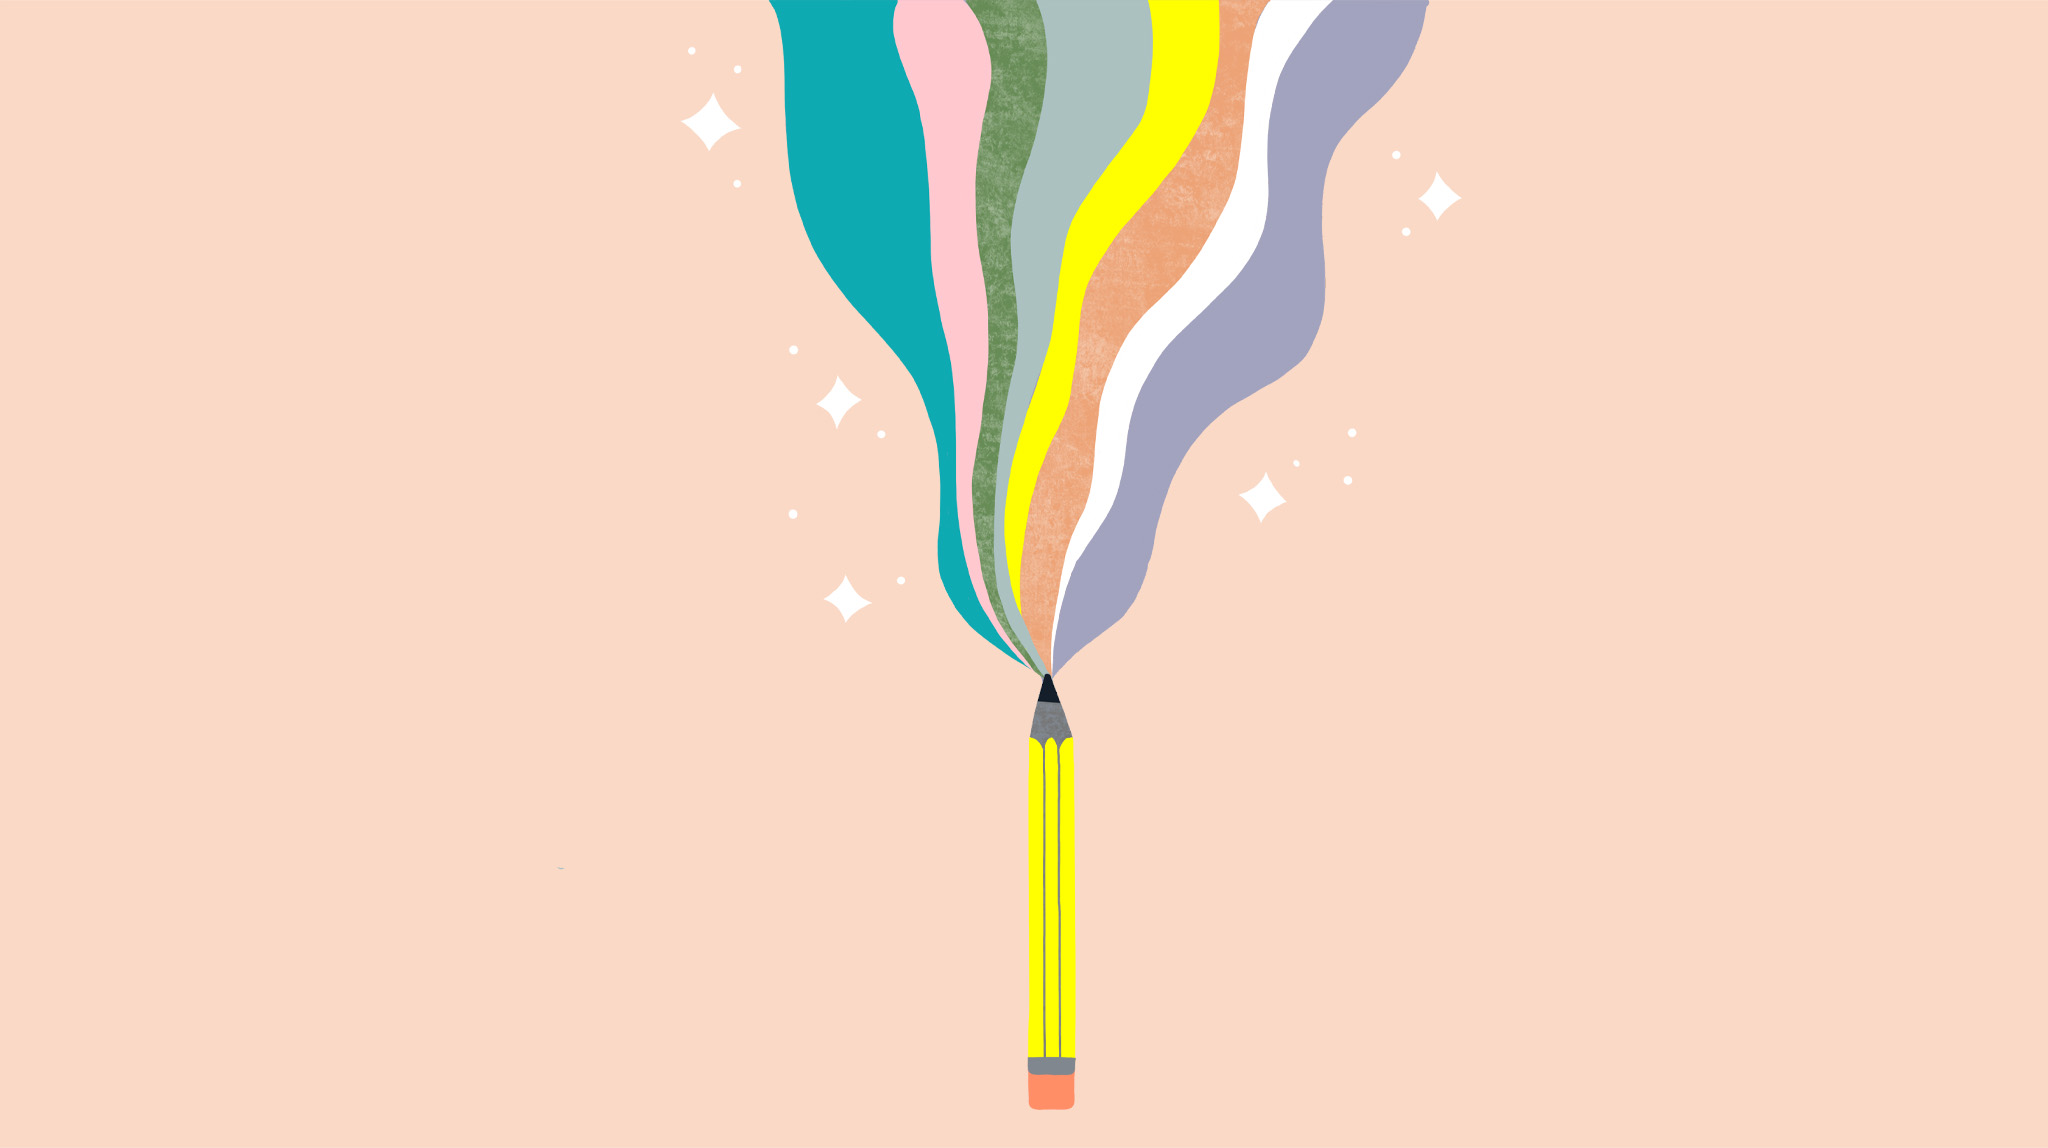 Blog illustration showing a pencil and rainbows